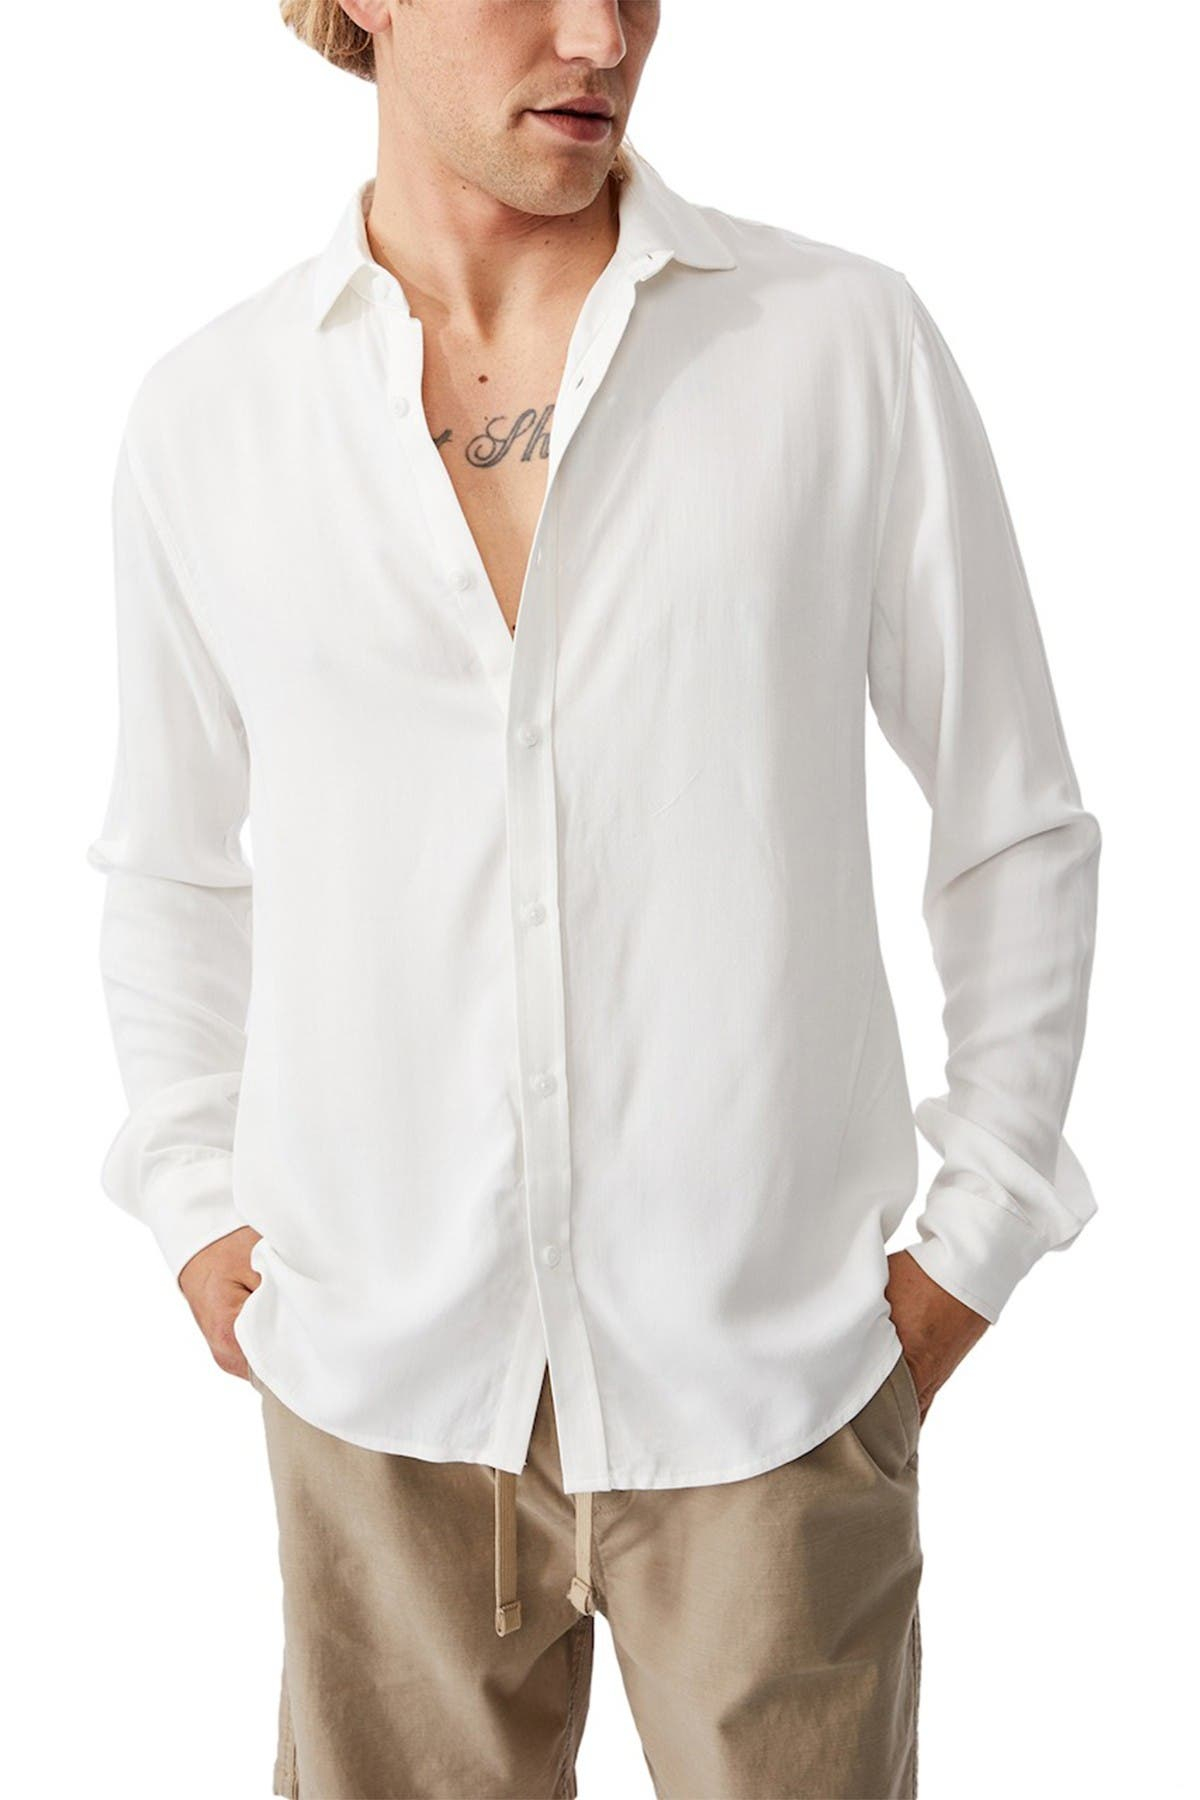 Cotton On 91 Long Sleeve Shirt at Nordstrom Rack